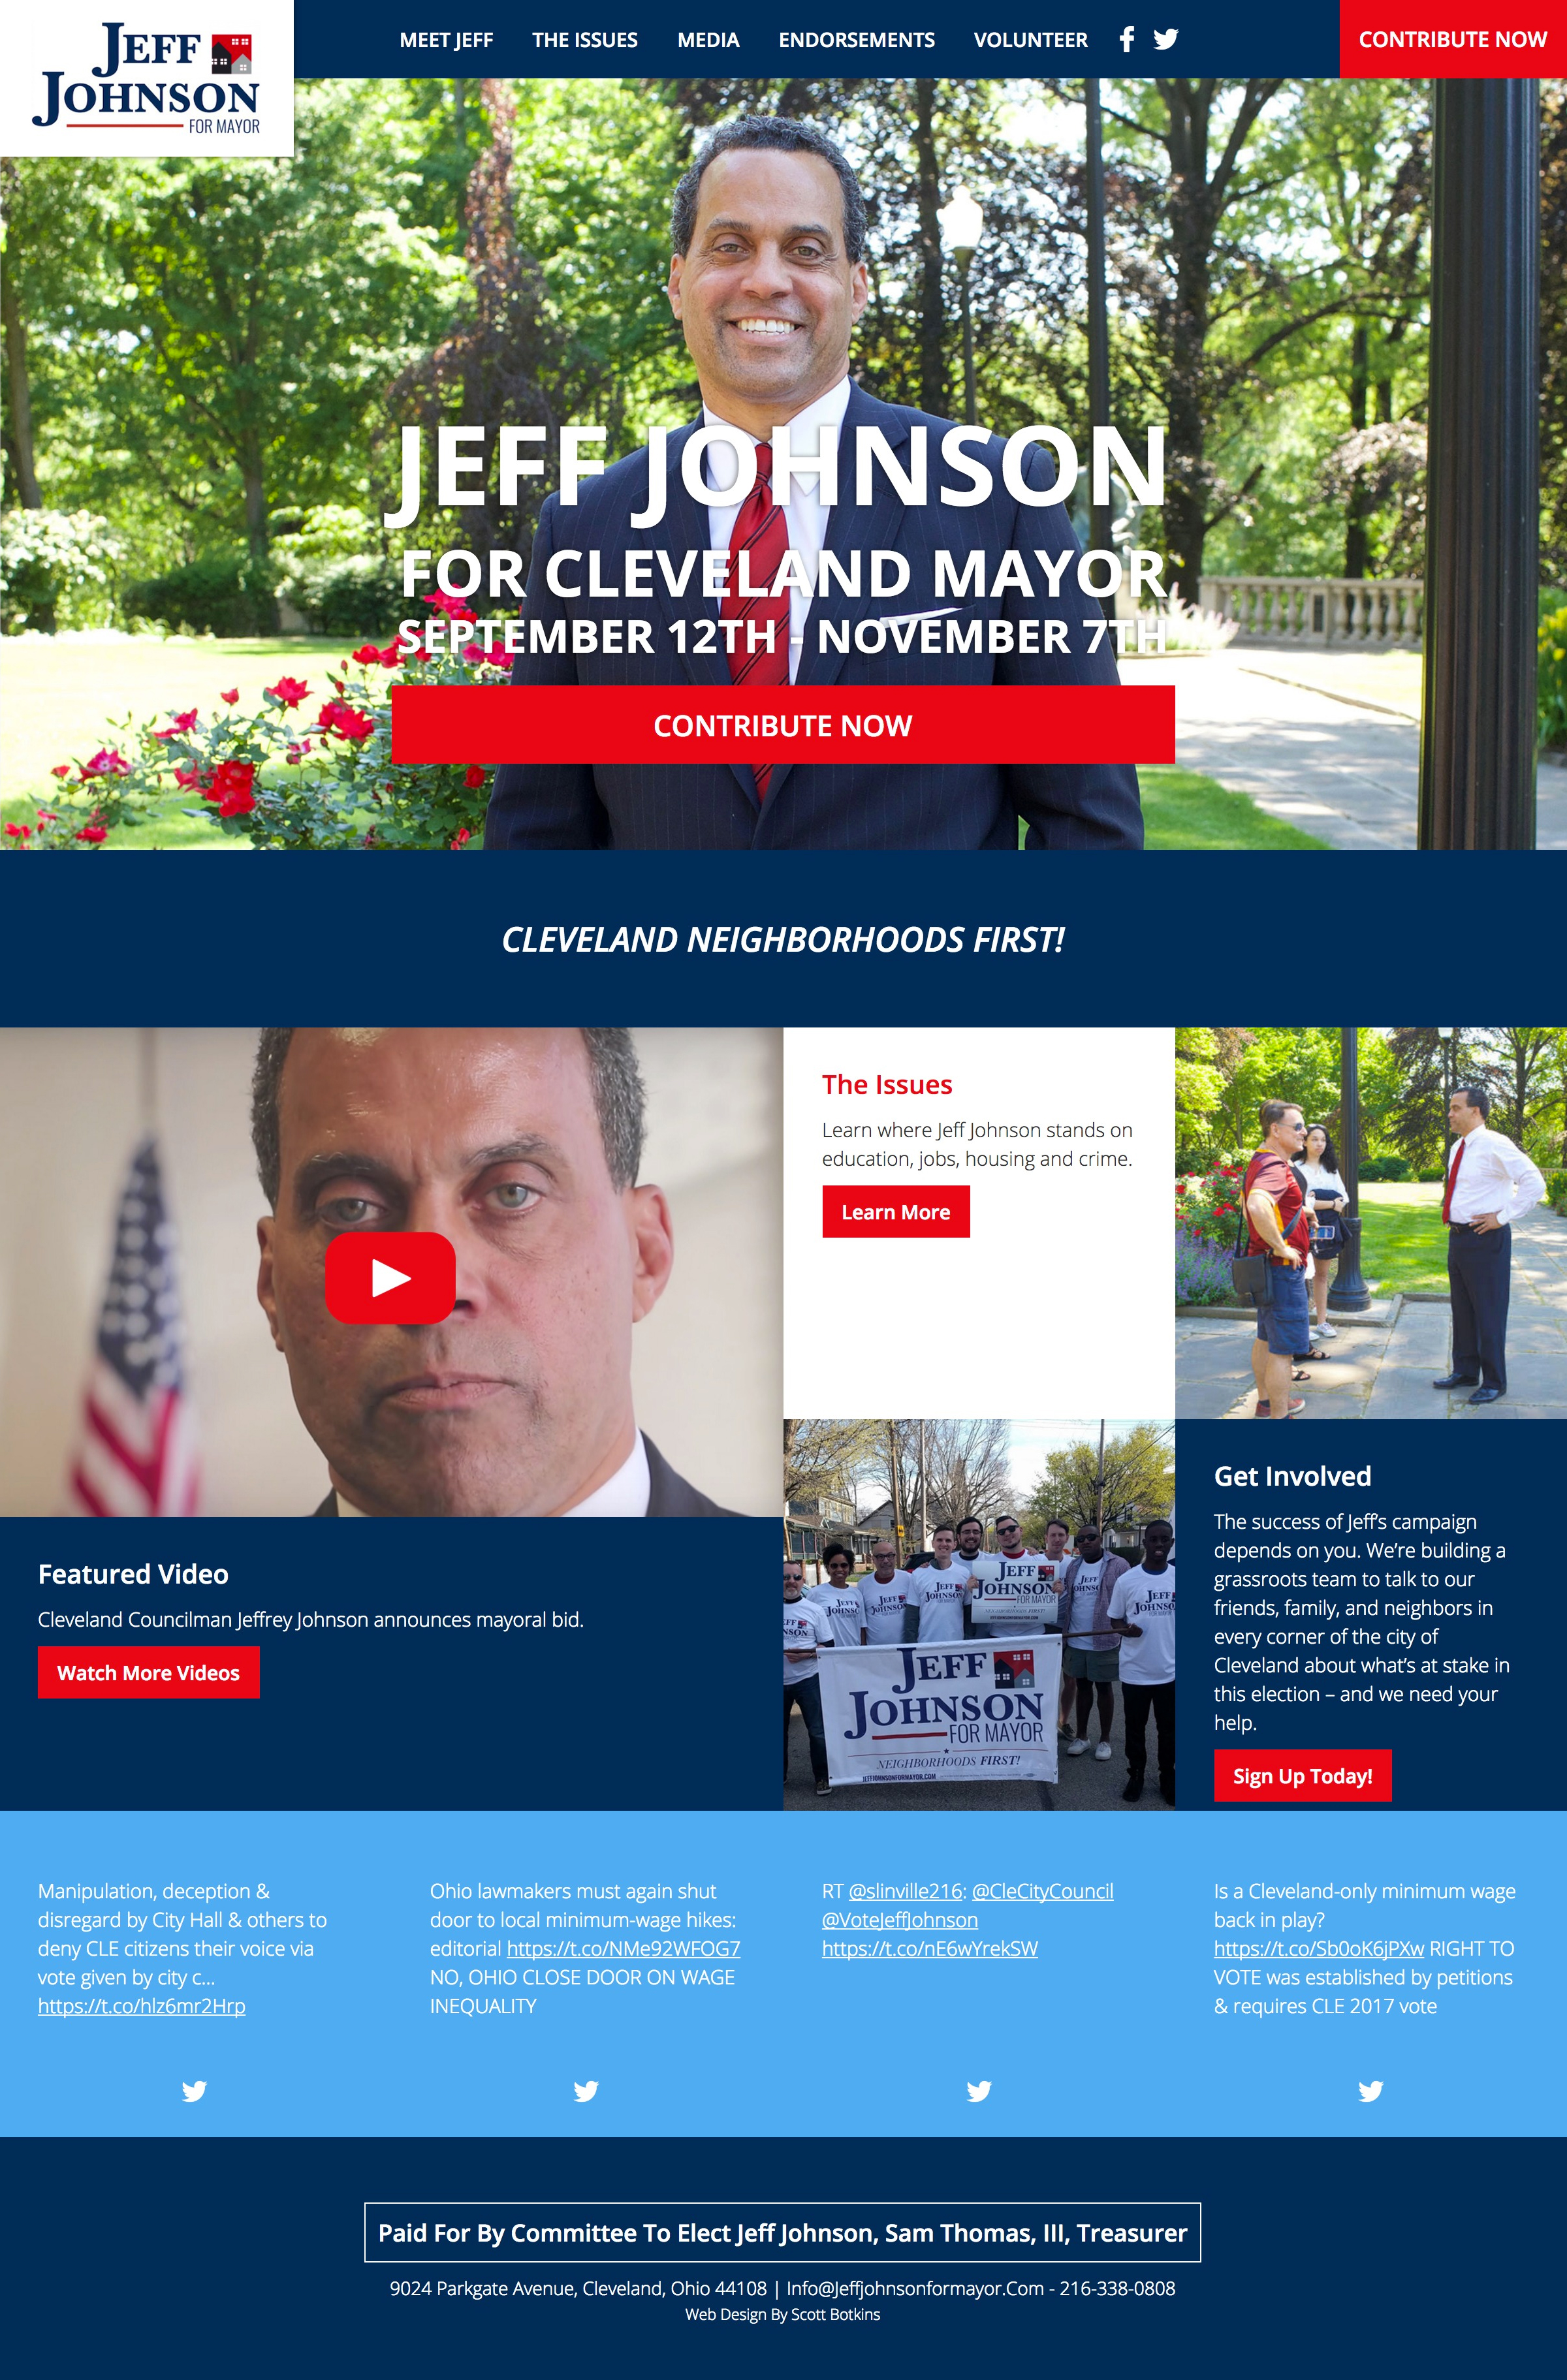 Jeff Johnson For Mayor of Cleveland